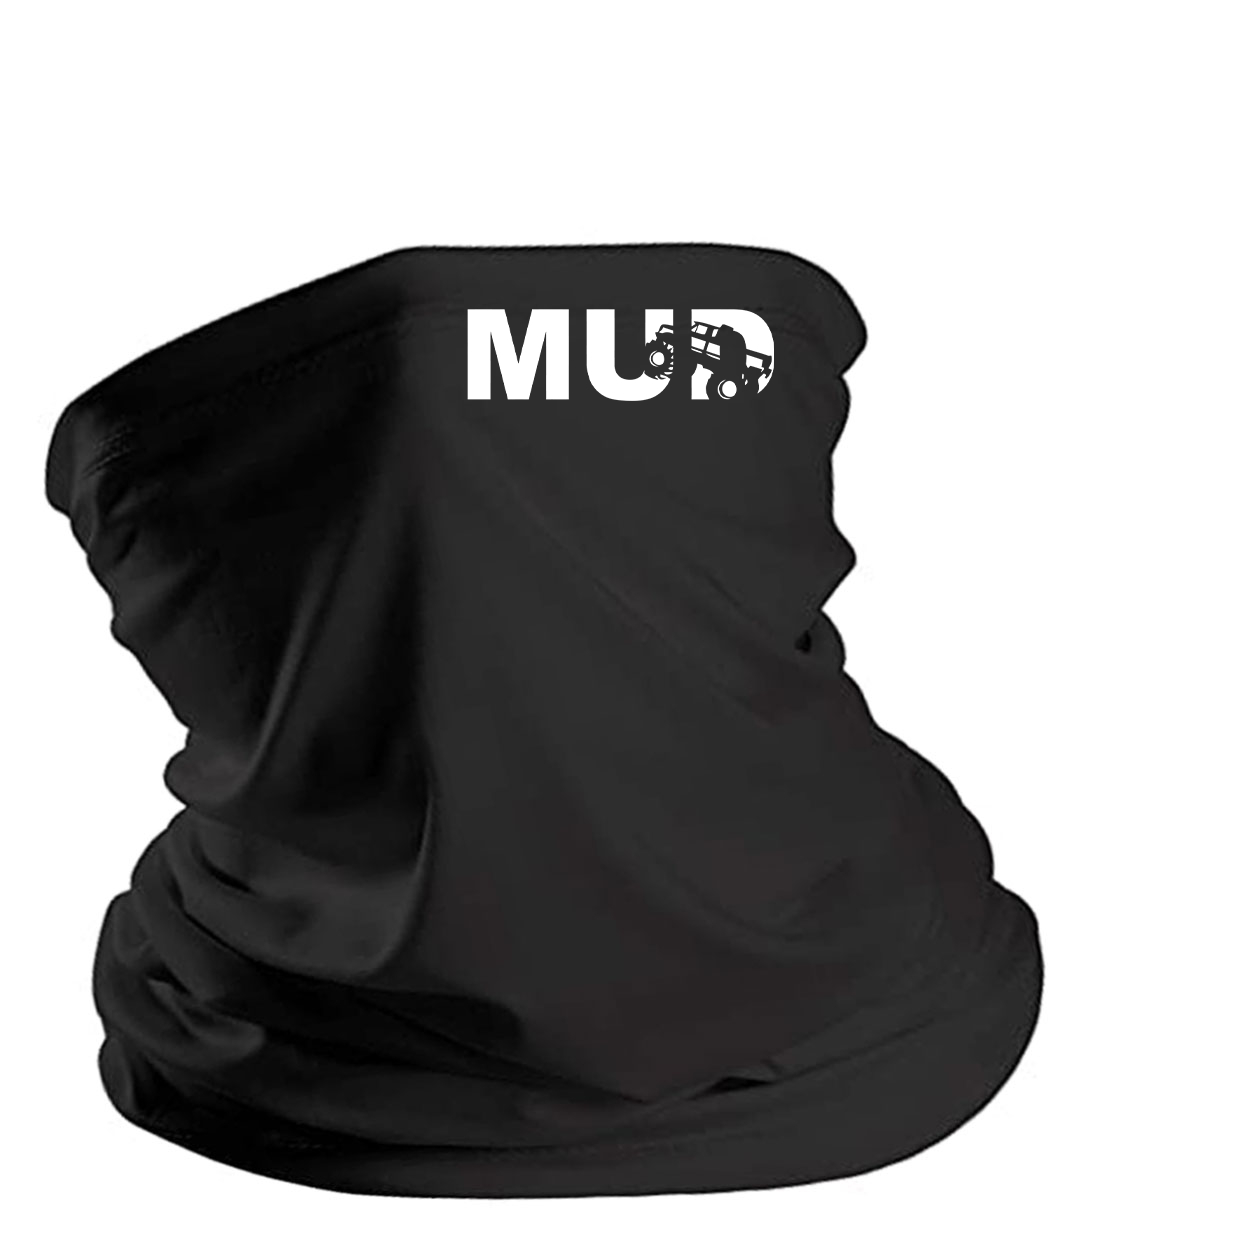 Mud Truck Logo Night Out Lightweight Neck Gaiter Face Mask Black (White Logo)